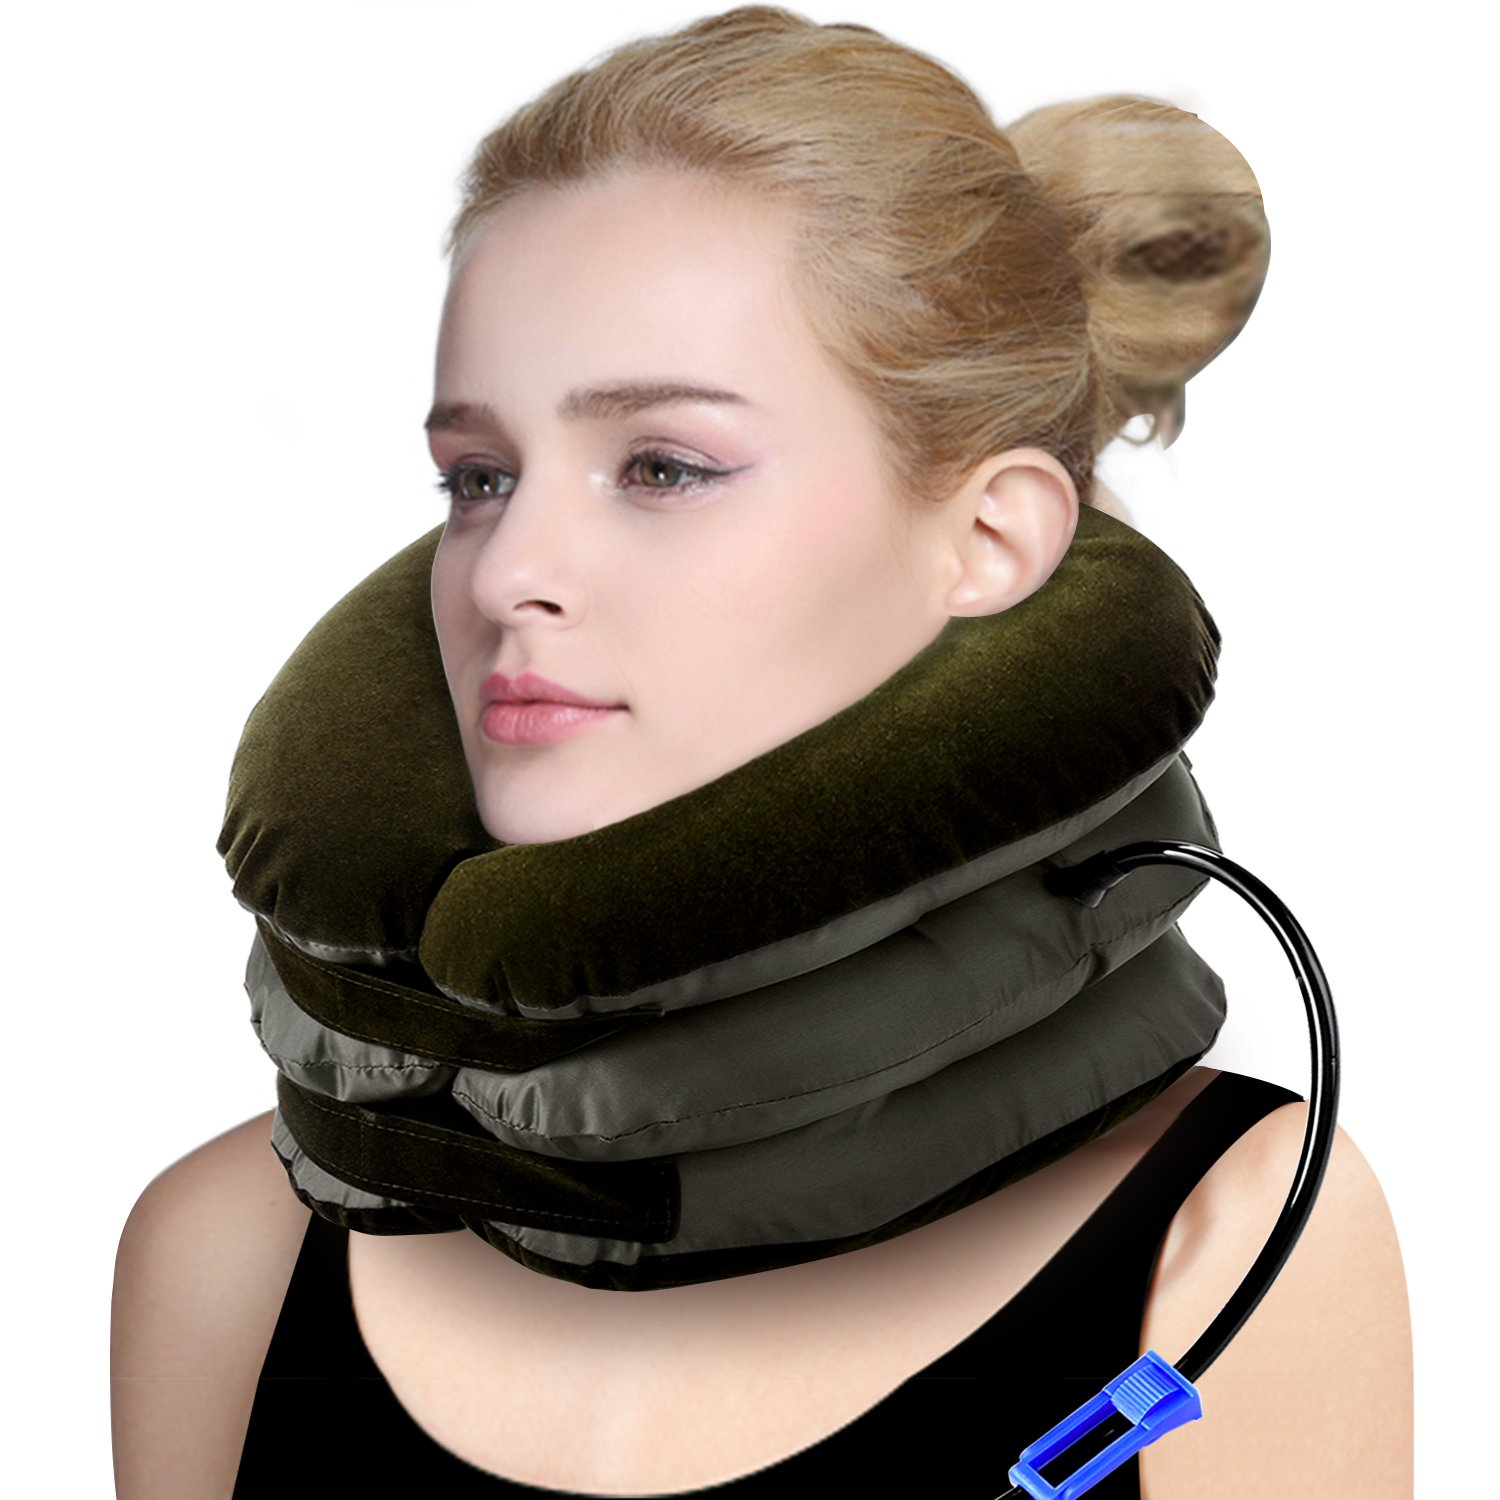 P PURNEAT Cervical Neck Traction Device – Instant Pain Relief for Chronic Neck and Shoulder Pain – Effective Alternate Pain Relieving